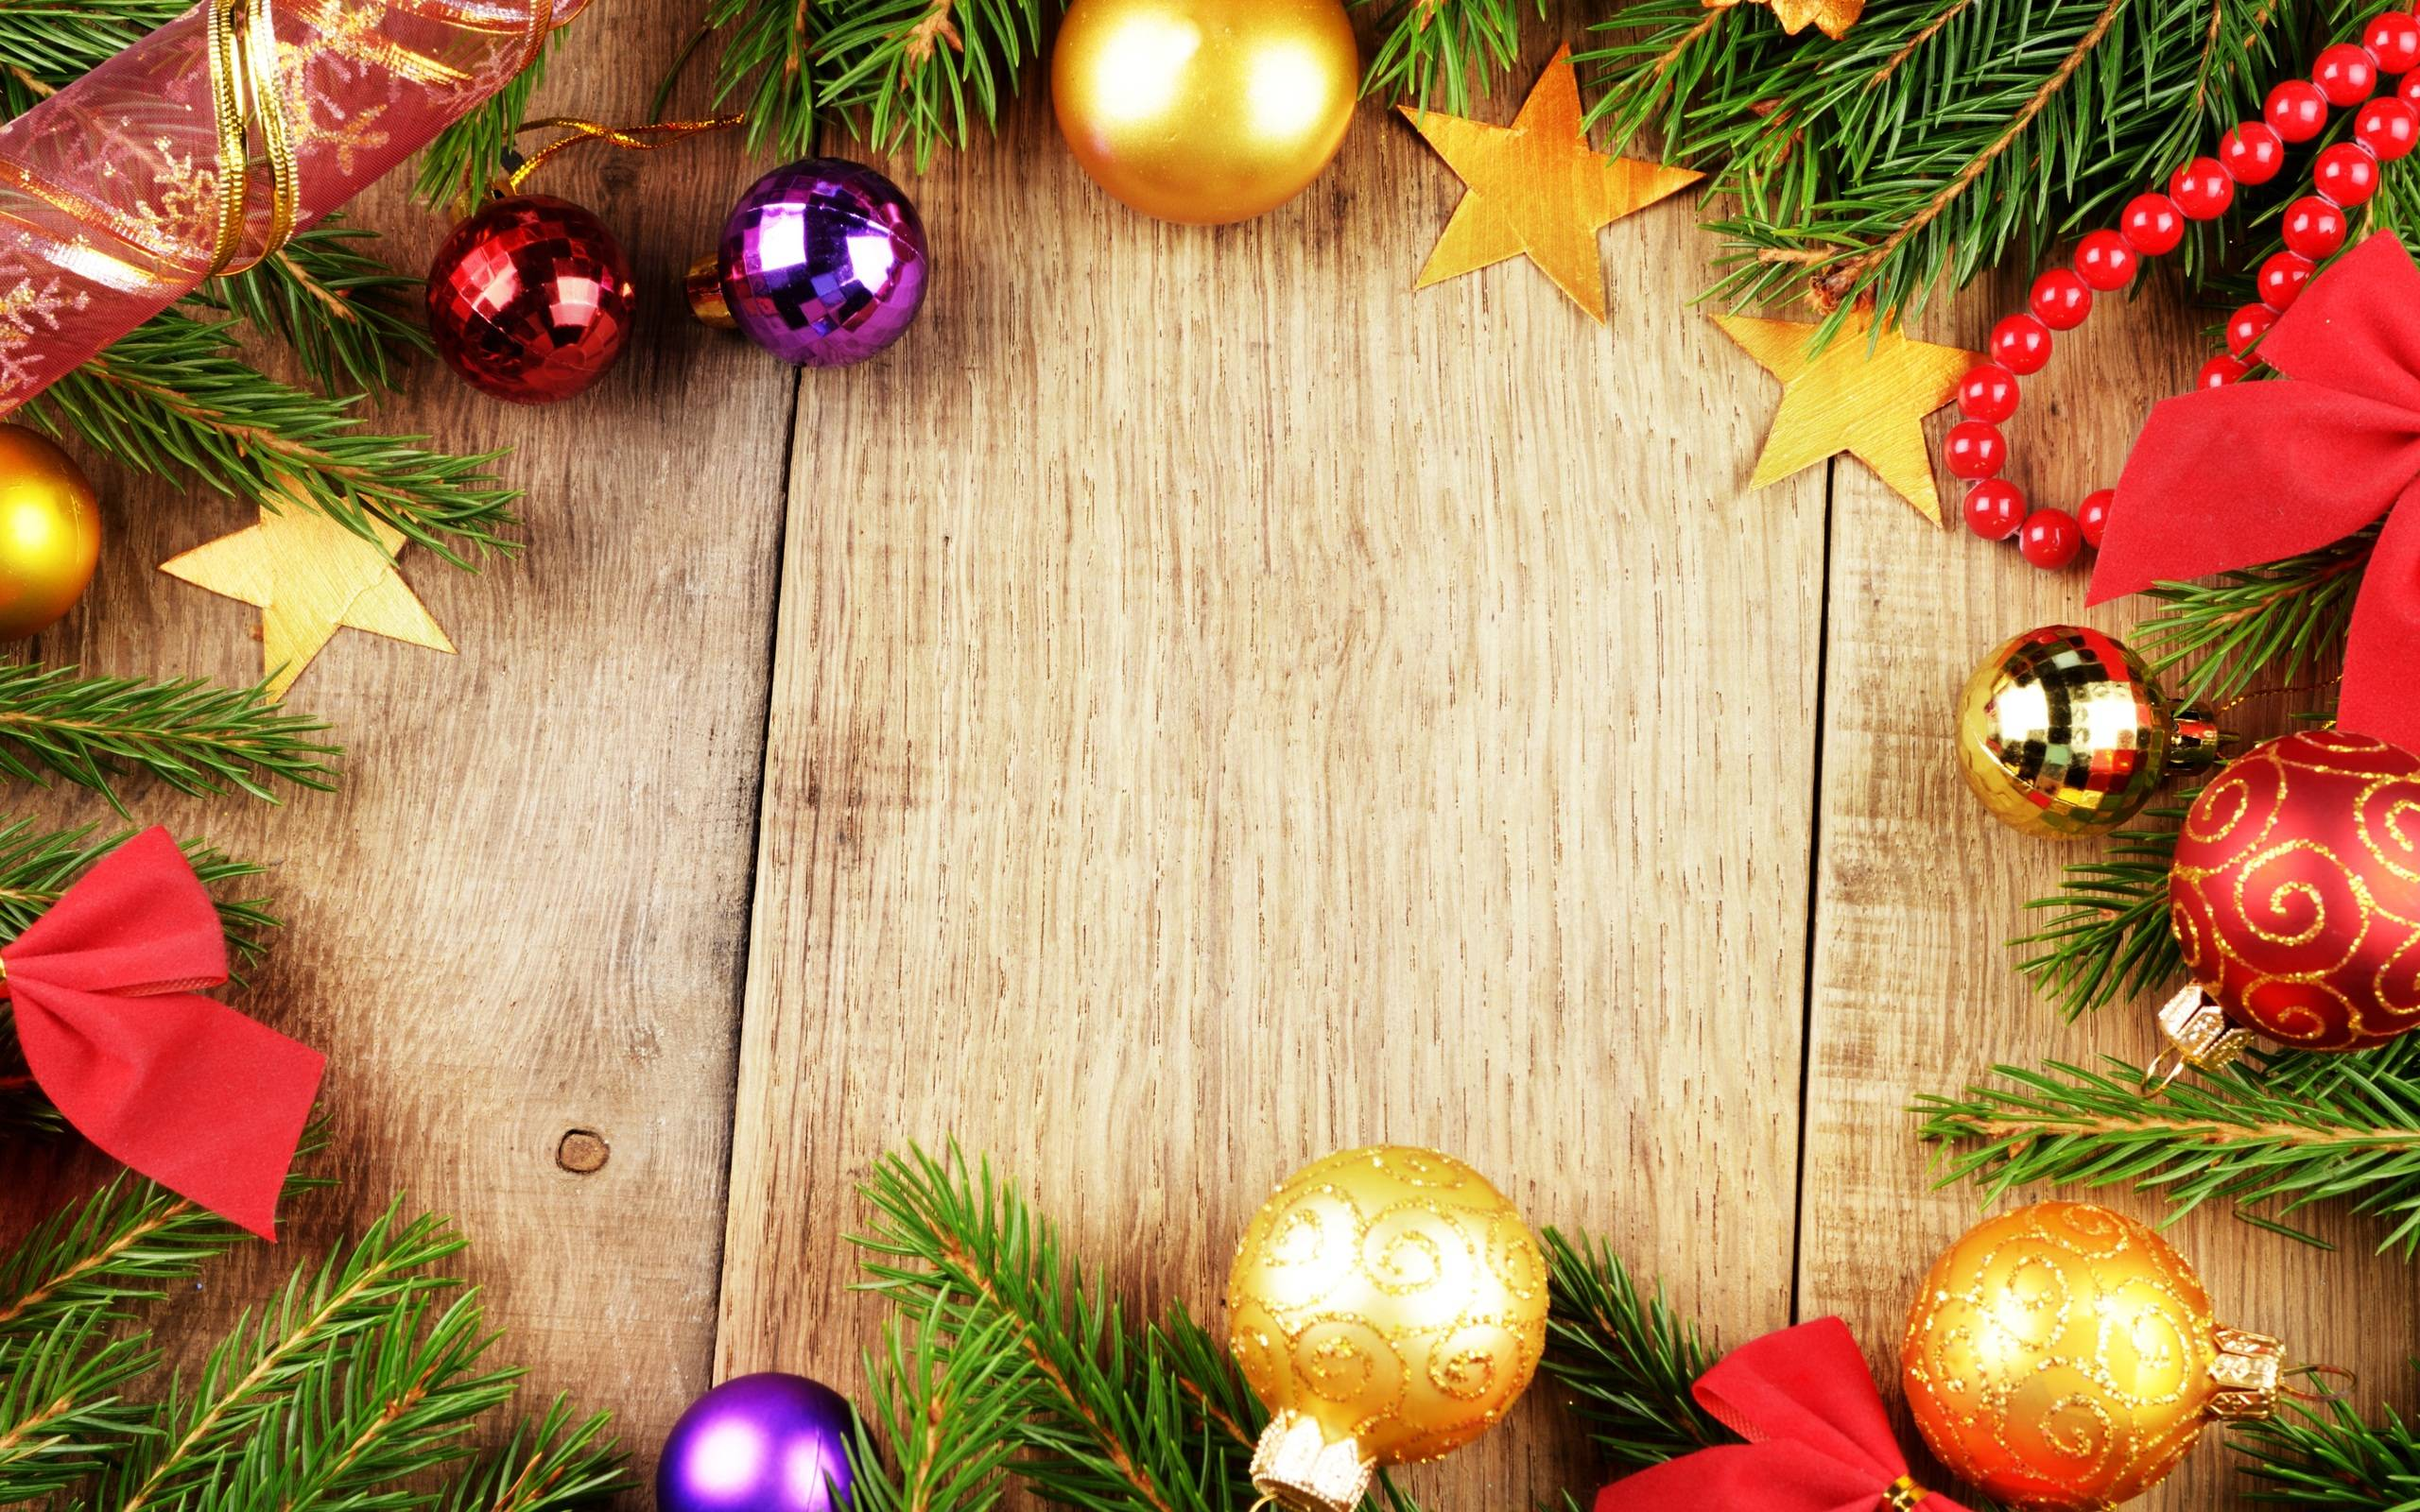 Download Christmas Baubles Wallpaper Gallery